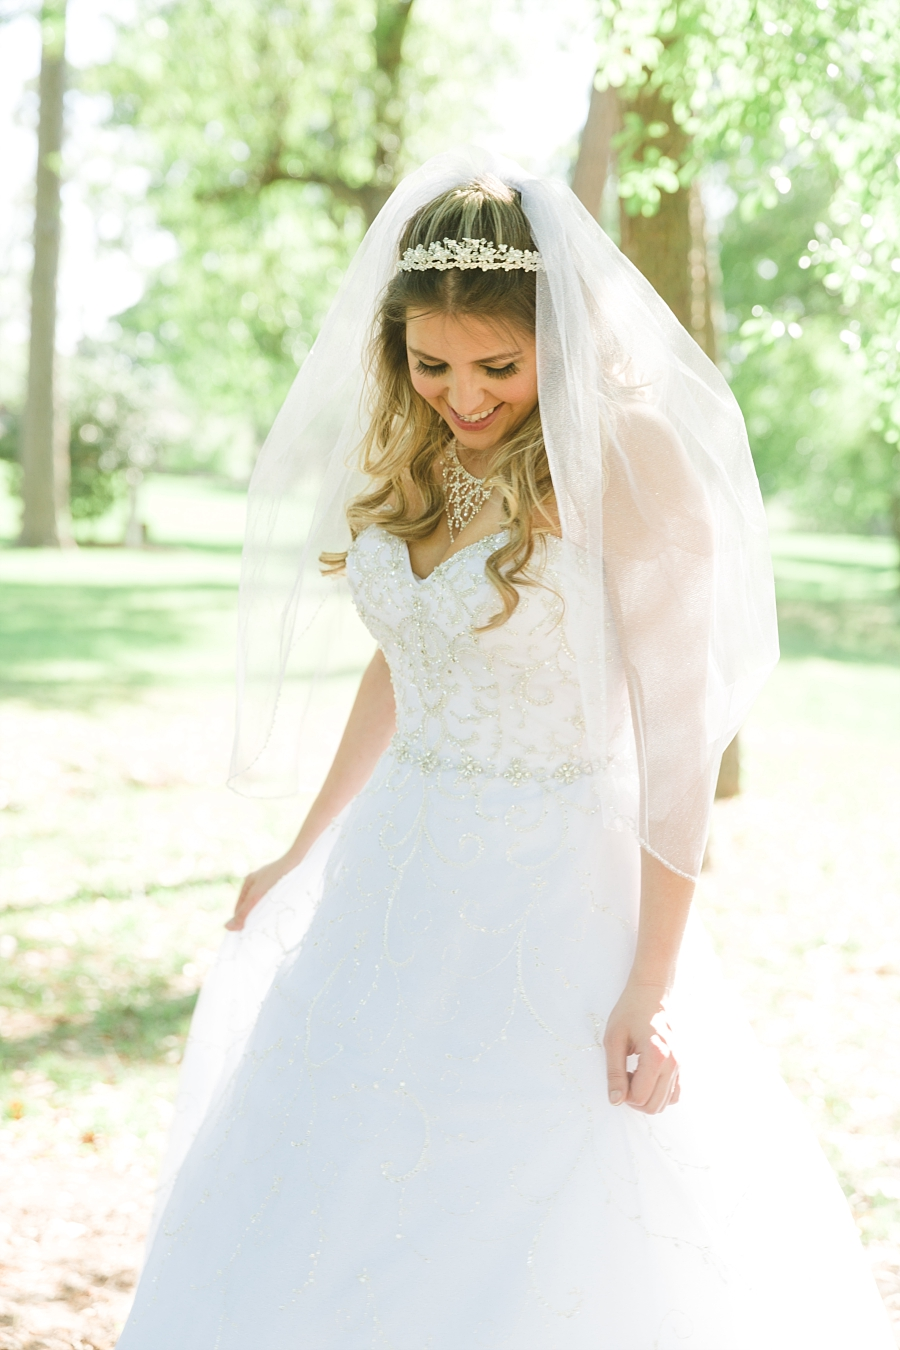 Stacy-Anderson-Photography-Shirley-Acres-Wedding-Photographer_0015.jpg